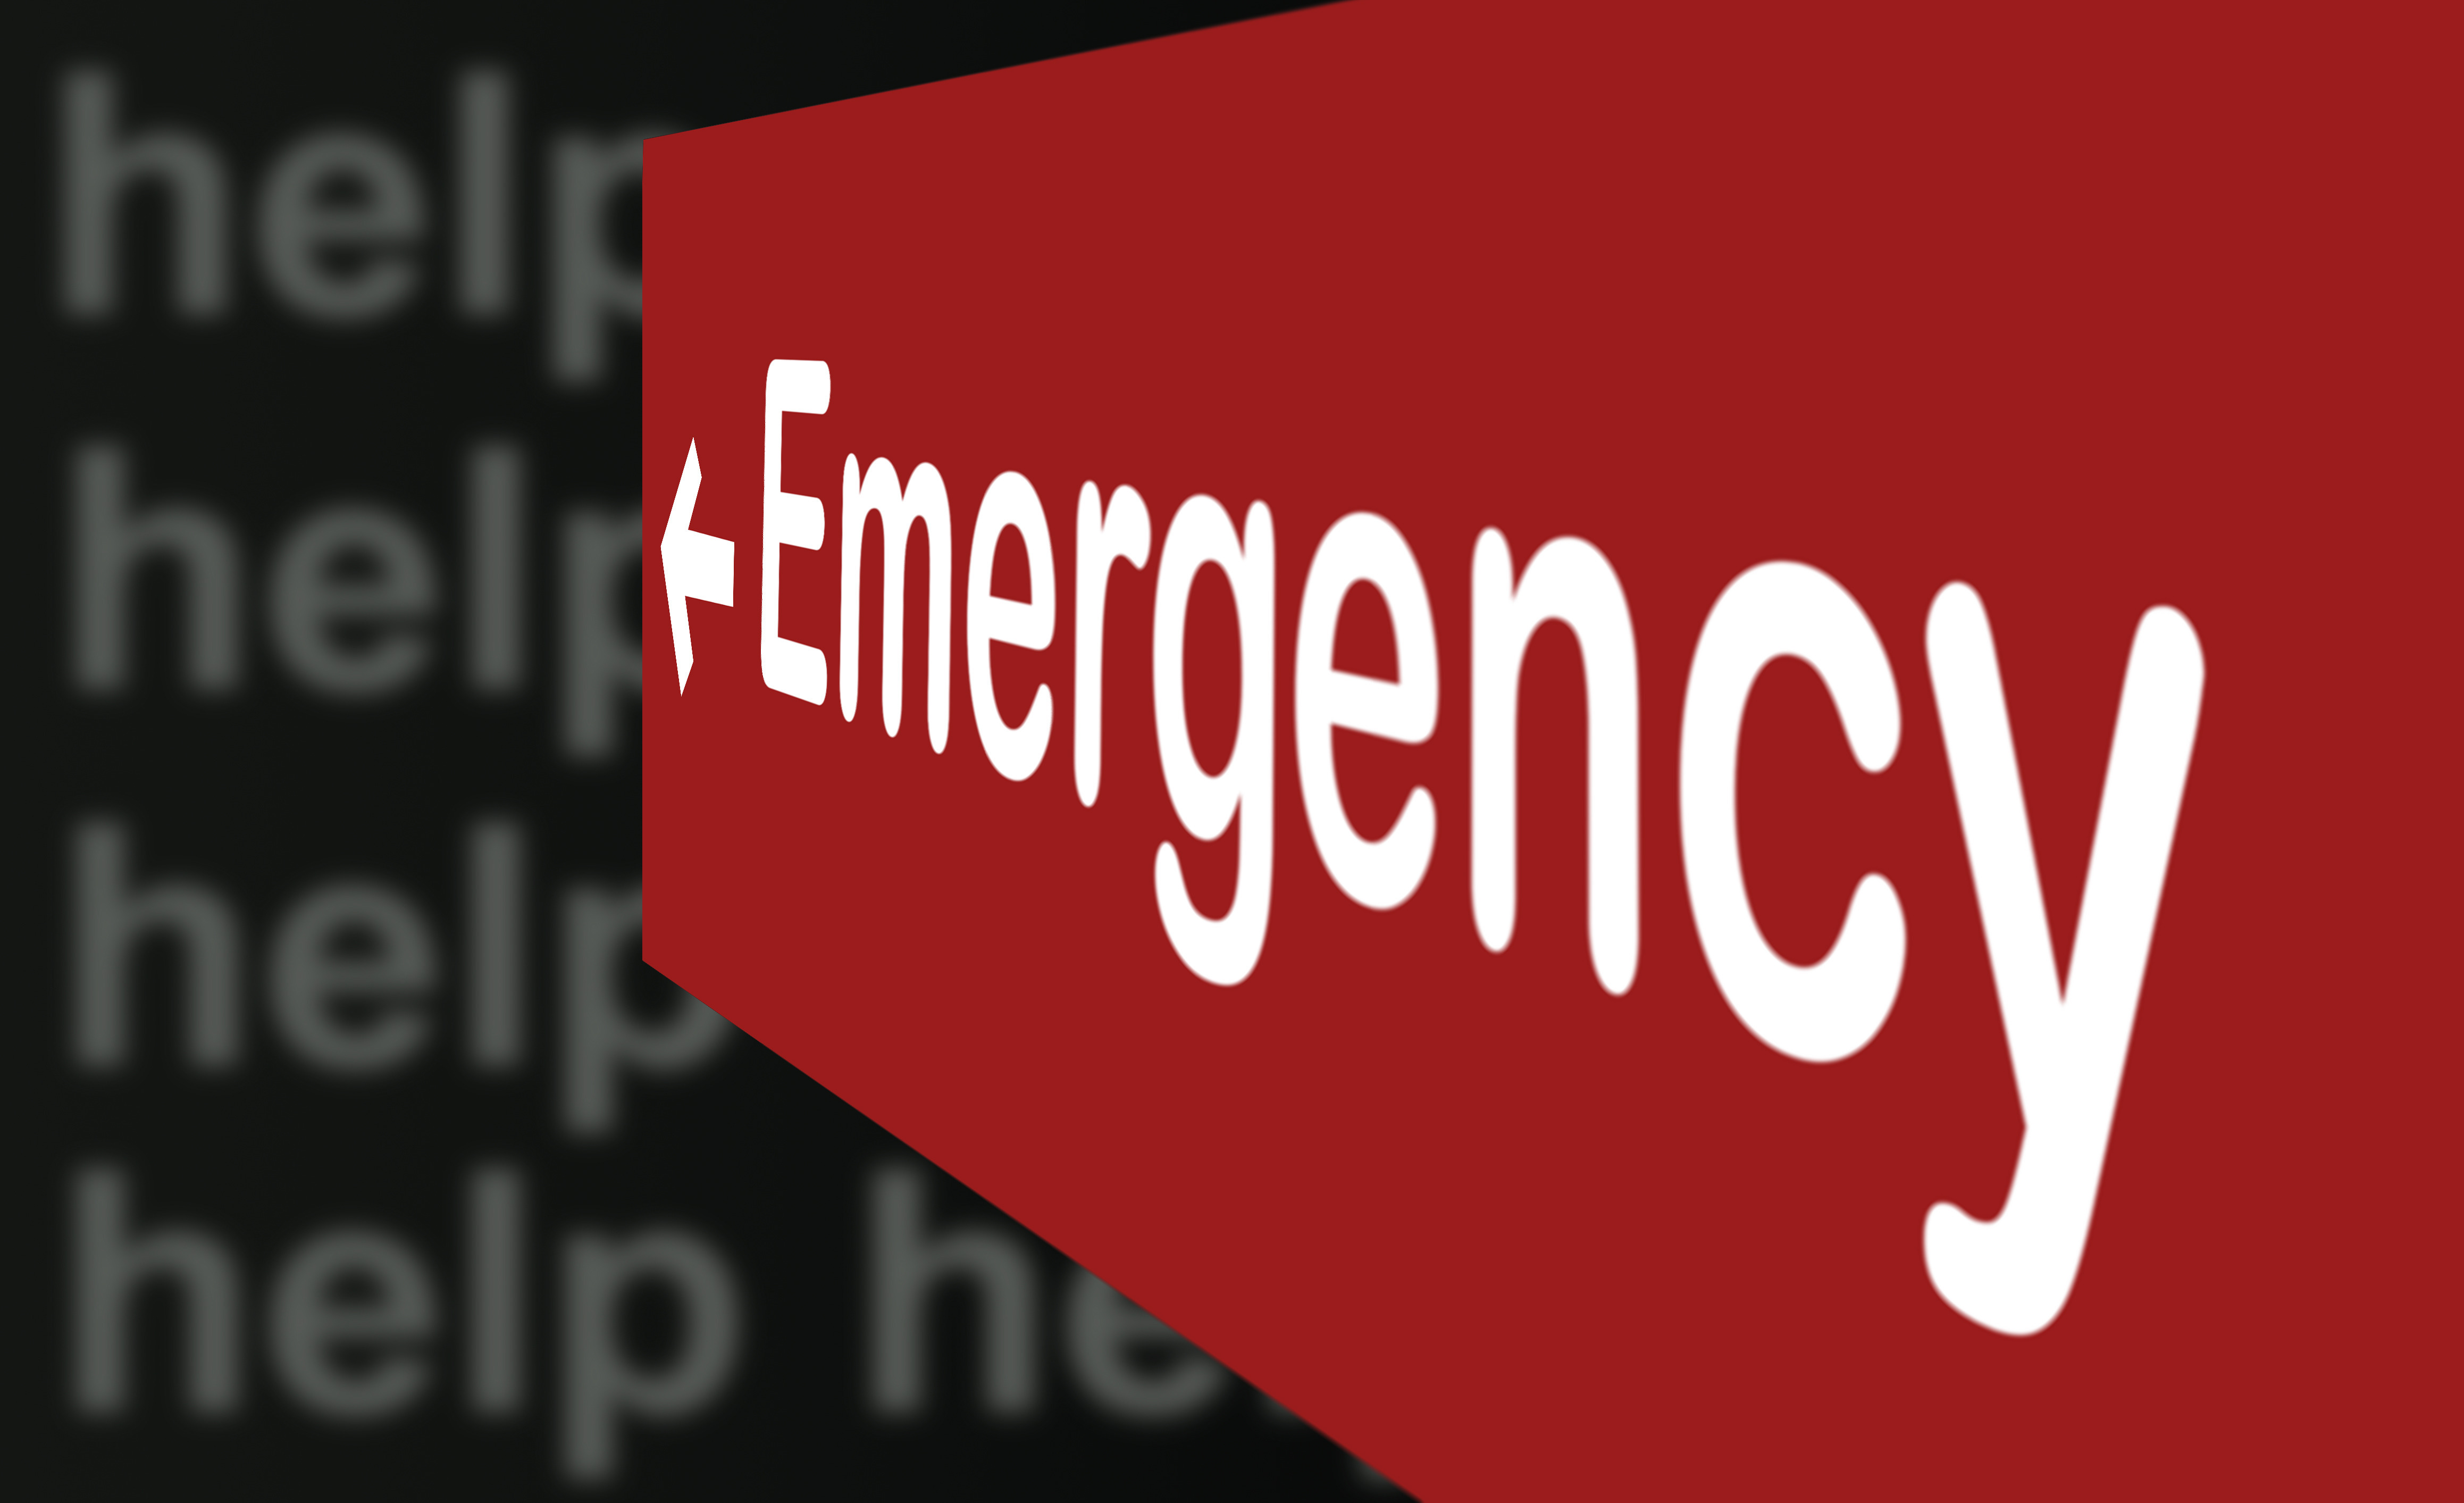 Emergency Sign with help words in background made in 2d software